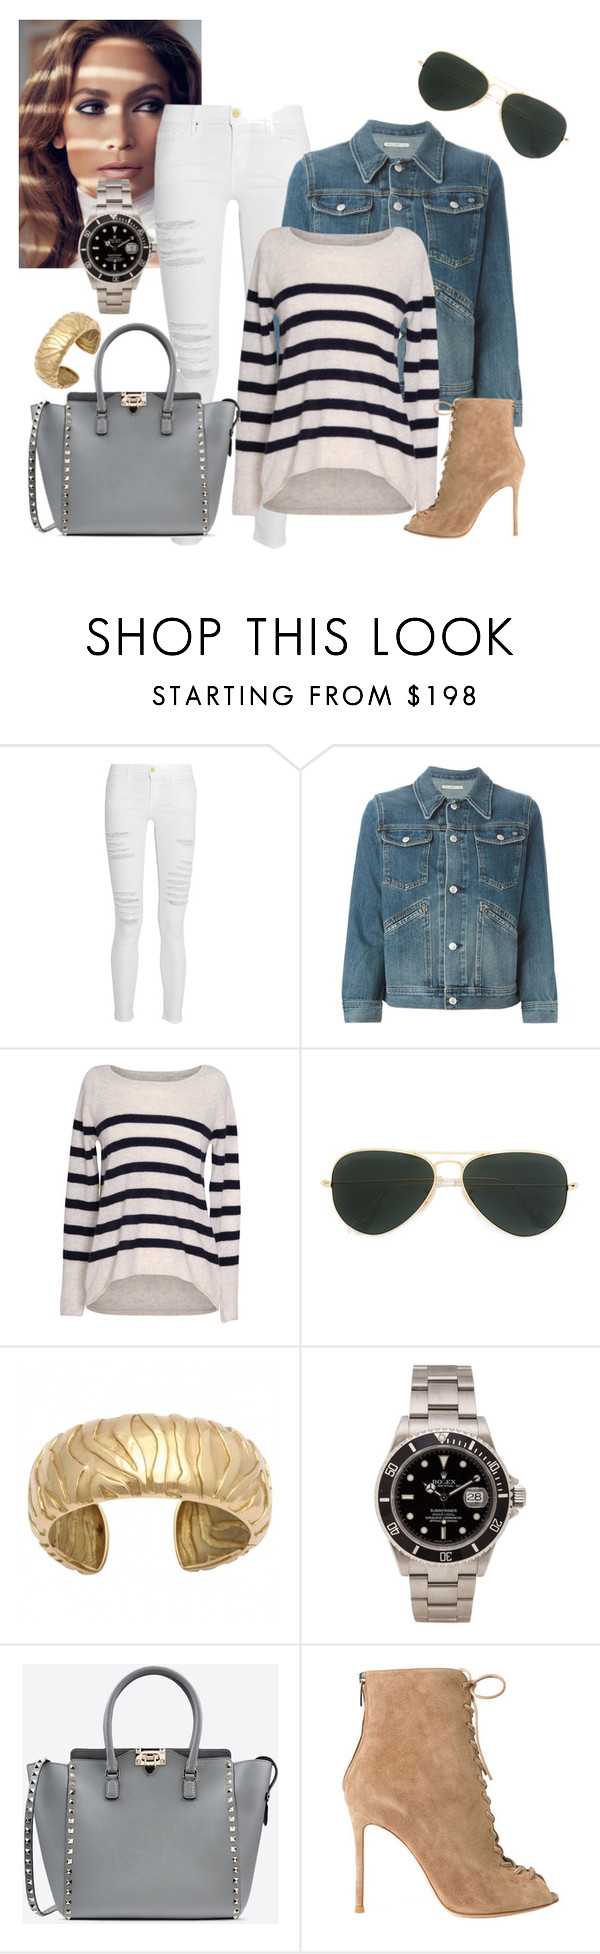 """Sunset Strip"" by saraihe ❤ liked on Polyvore featuring Jennifer Lopez, Frame Denim, AG Adriano Goldschmied, Velvet by Graham & Spencer, Ray-Ban, Rolex, Valentino, Gianvito Rossi and modern"